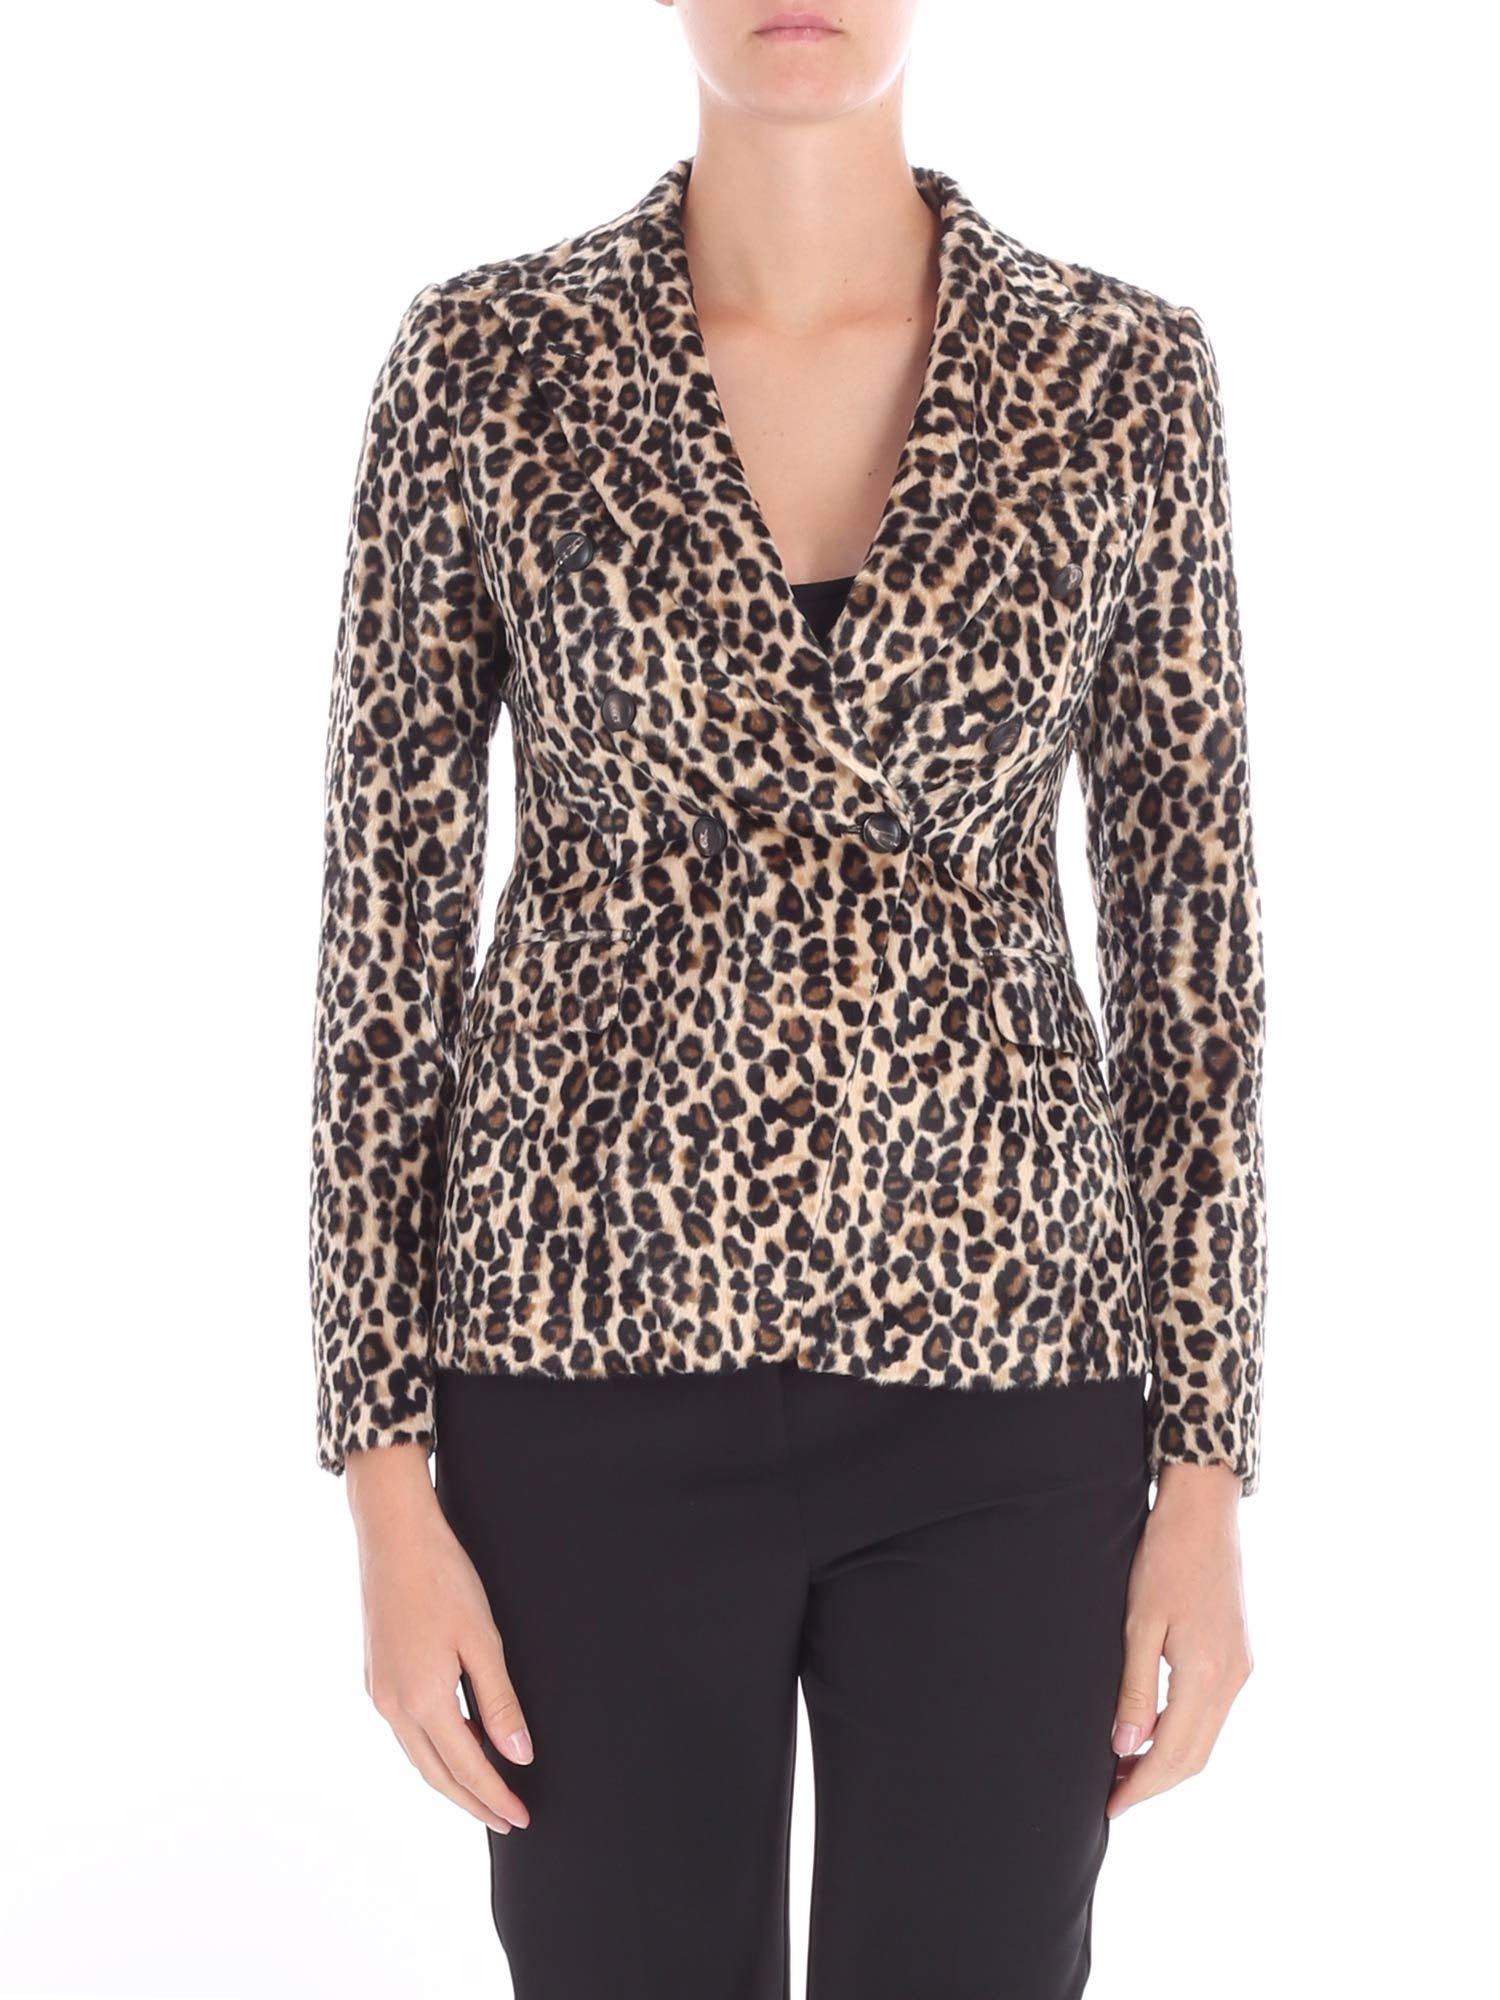 Tagliatore – Animal Printed Eco-fur Jacket